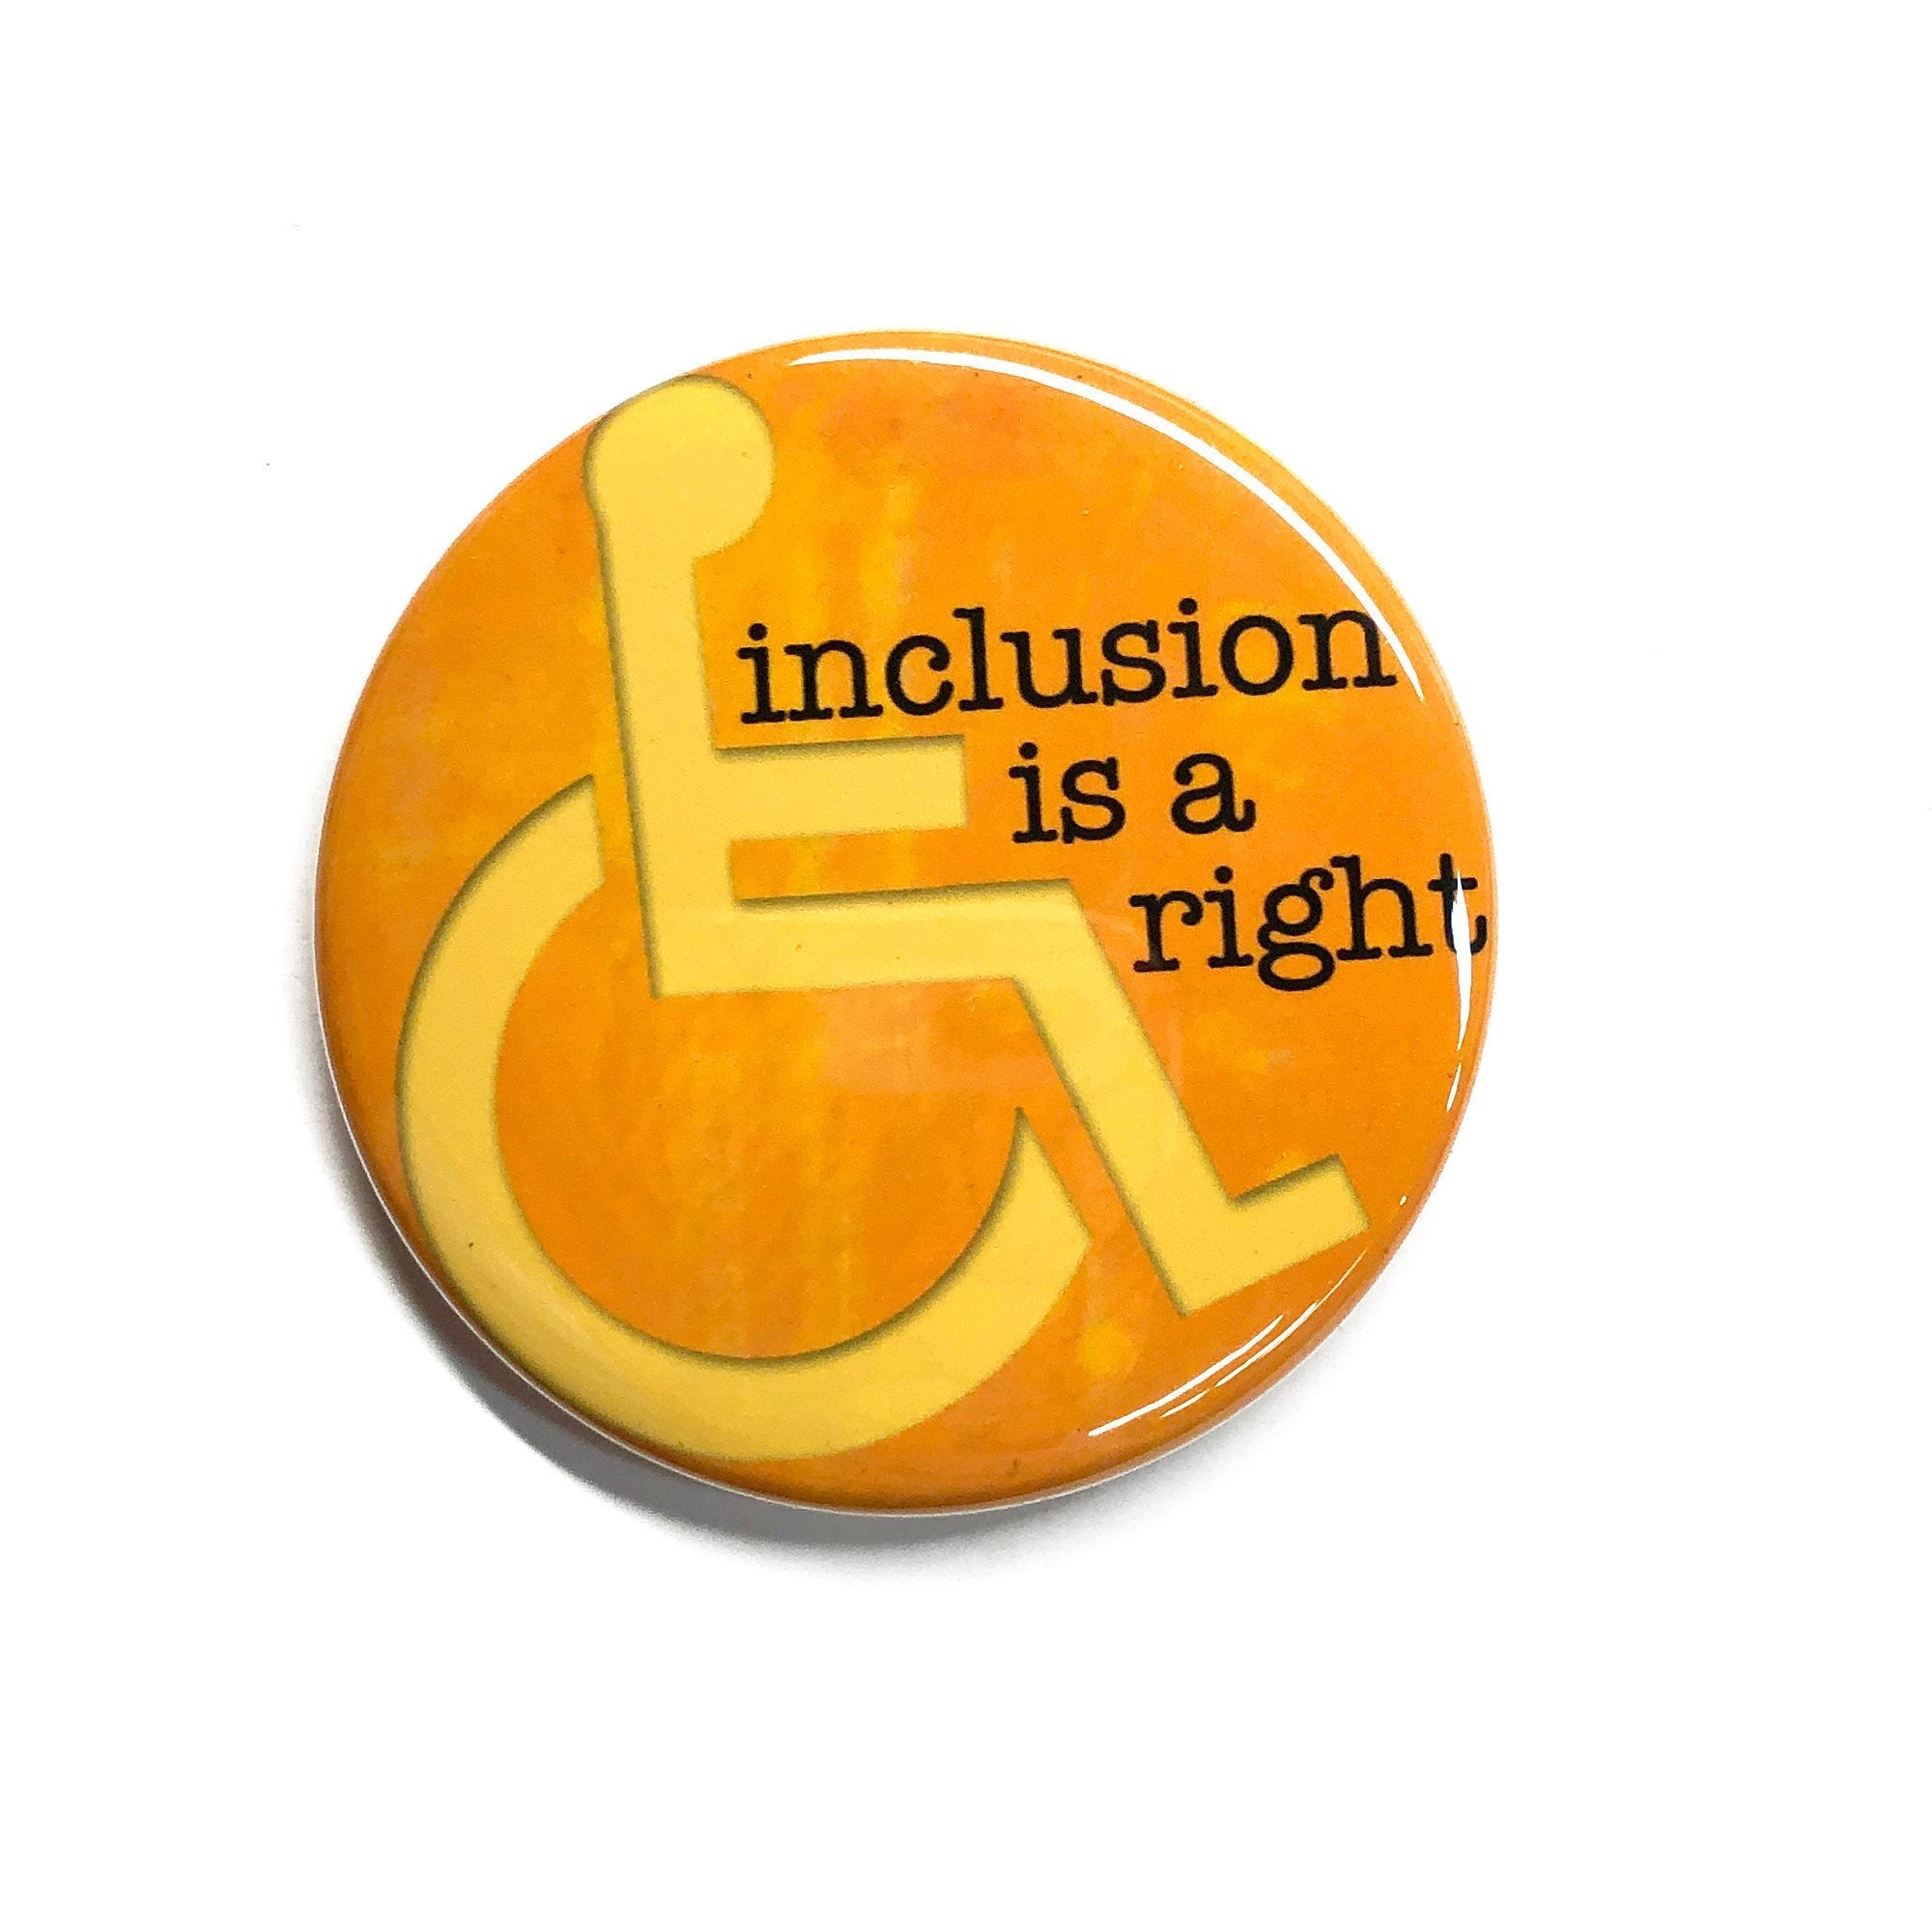 Inclusion is a Right - Disability Rights Pin or Magnet